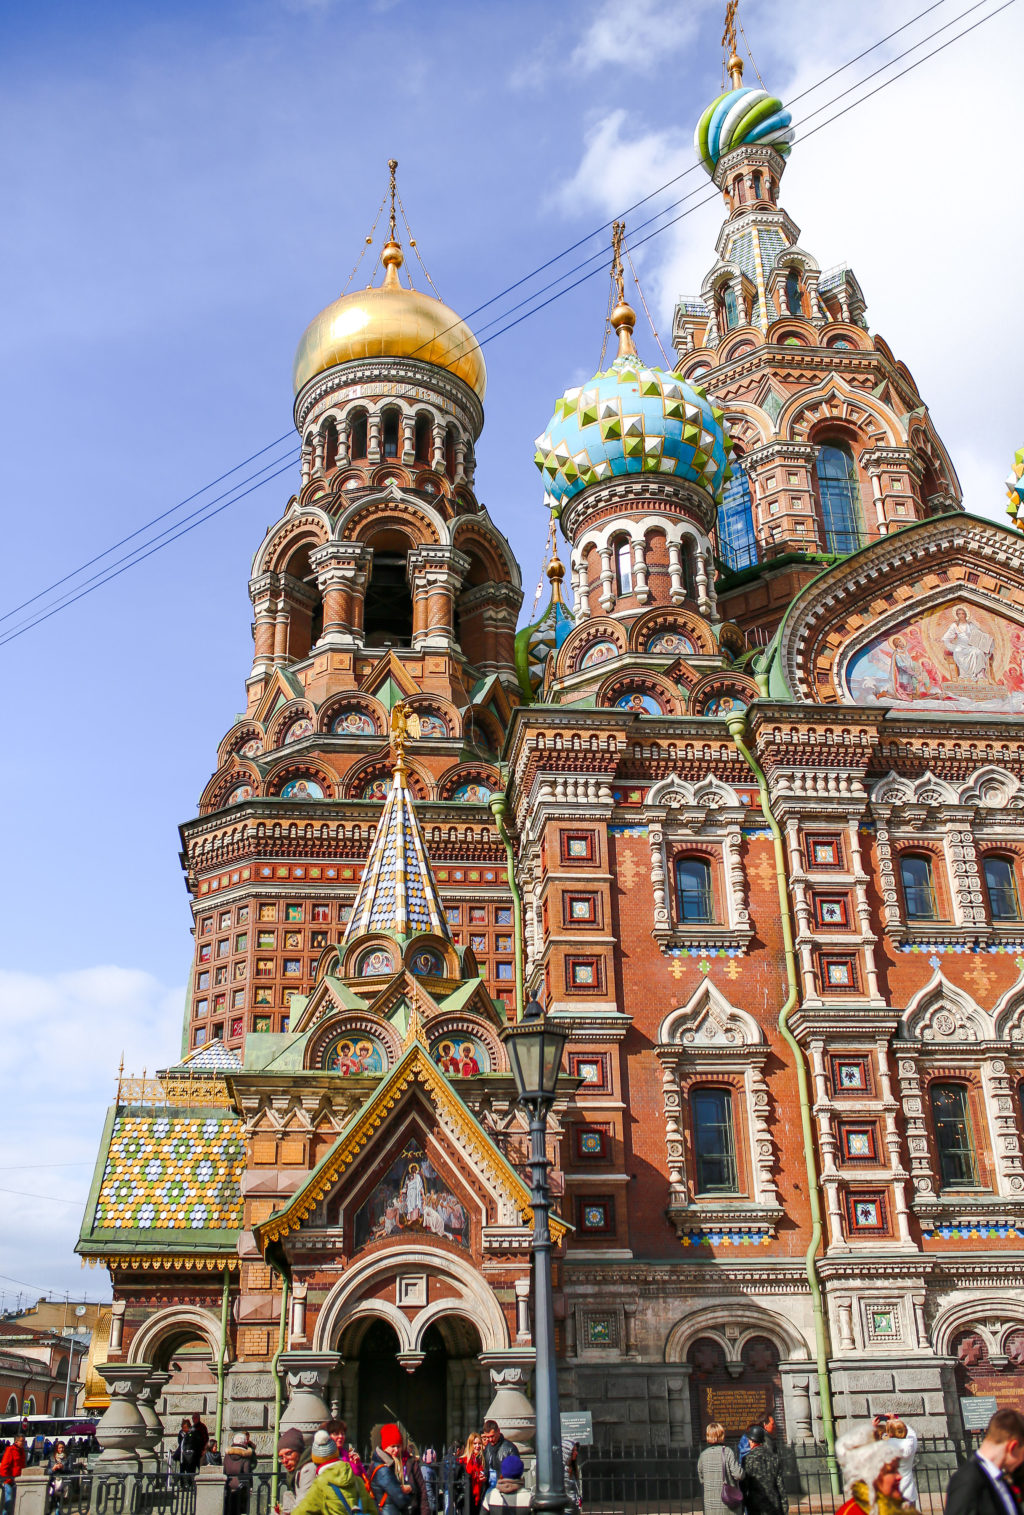 church of the spilled blood St.Petersburg Russia